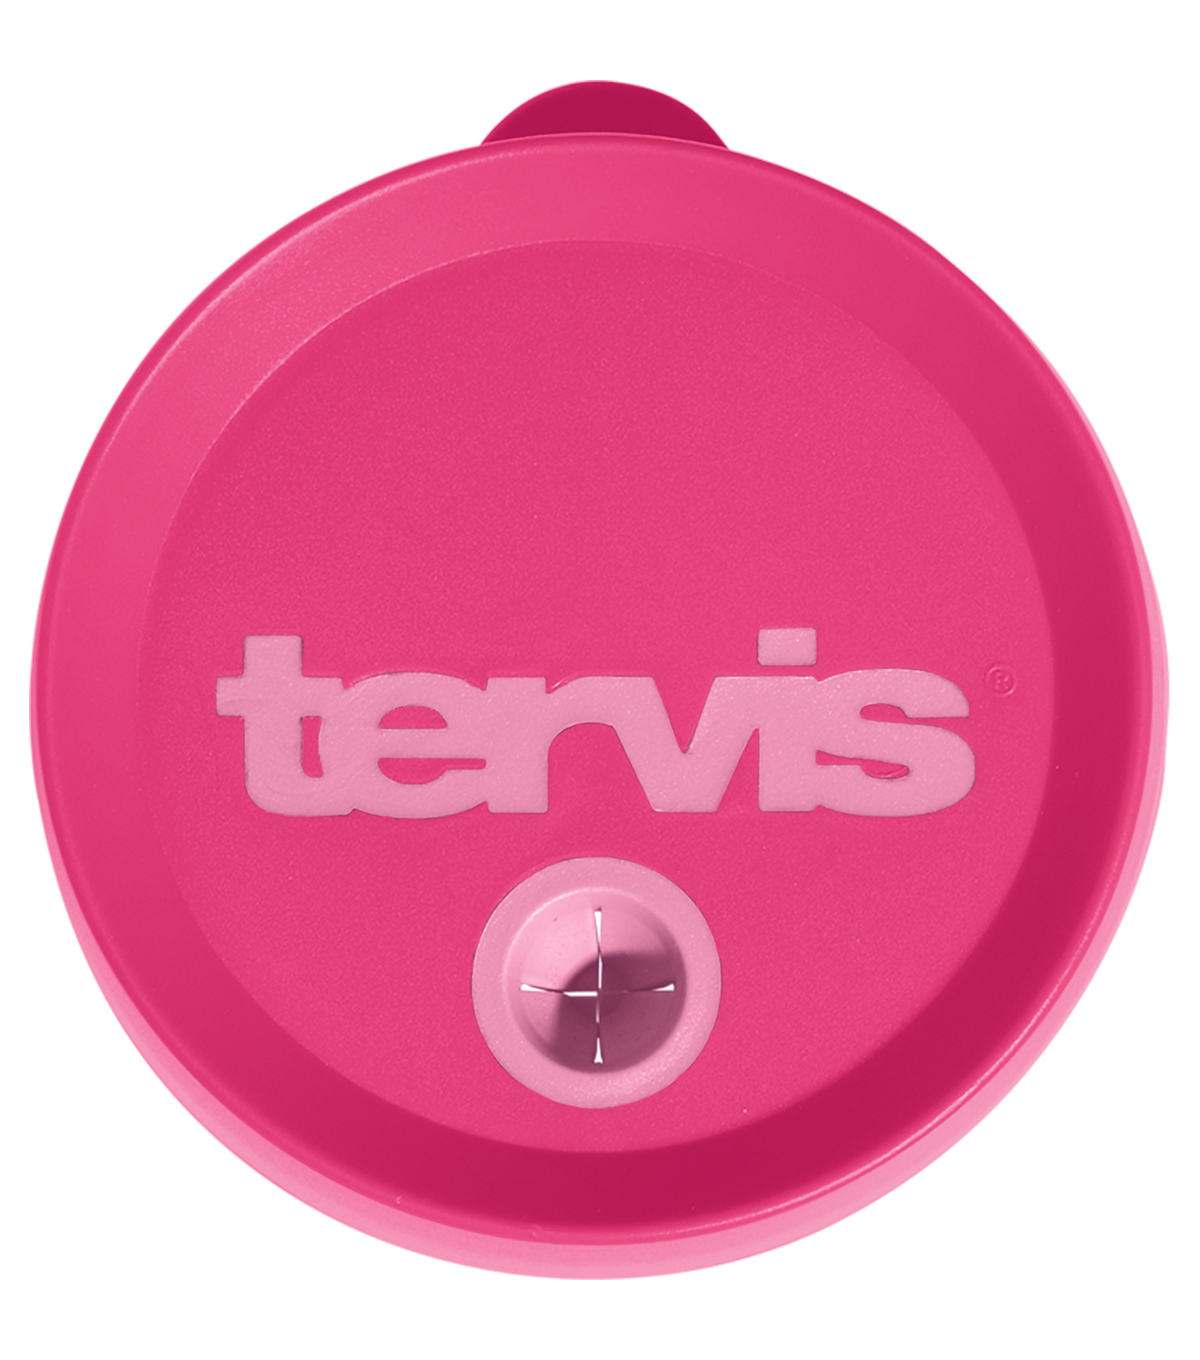 Tervis 24oz. Straw Lid-Pink